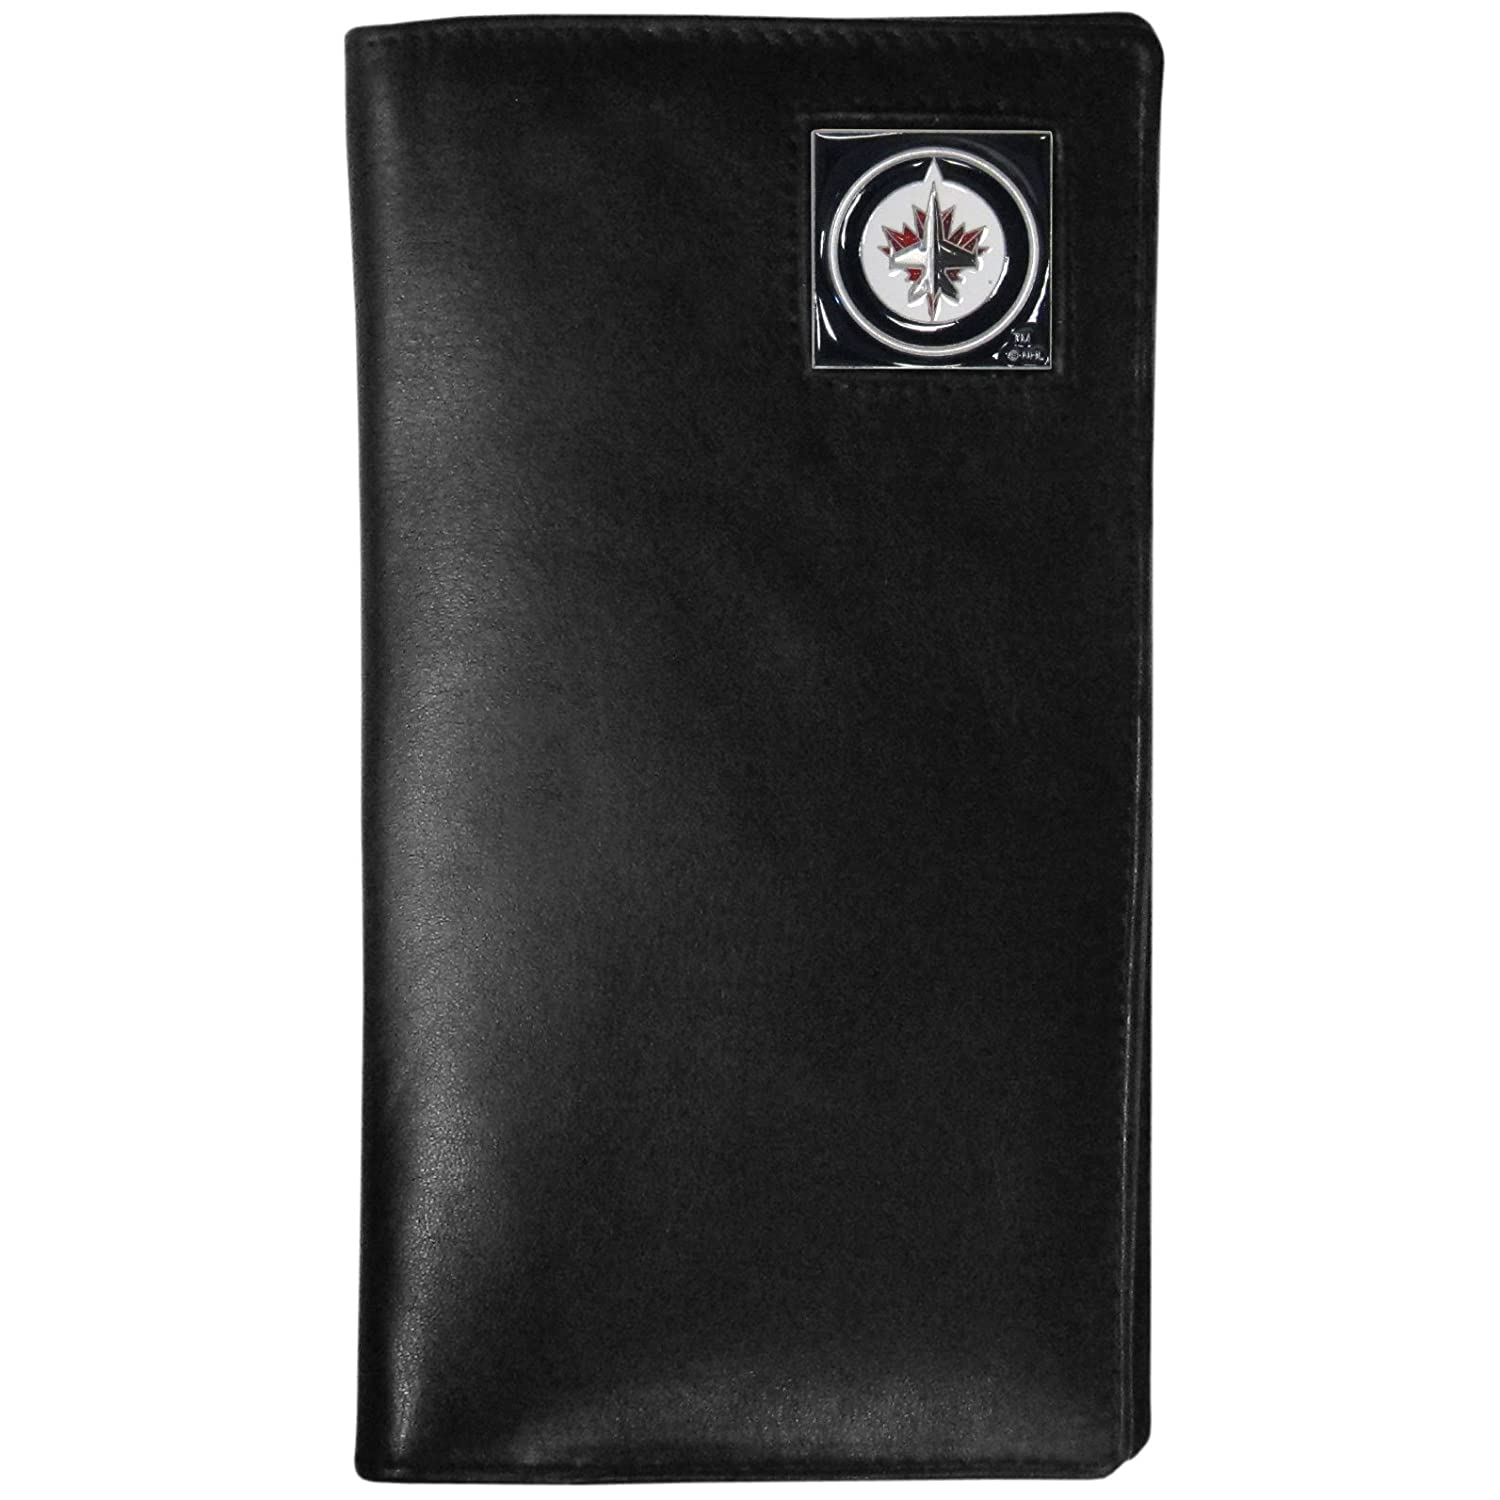 Siskiyou NHL Tall Leather Wallet